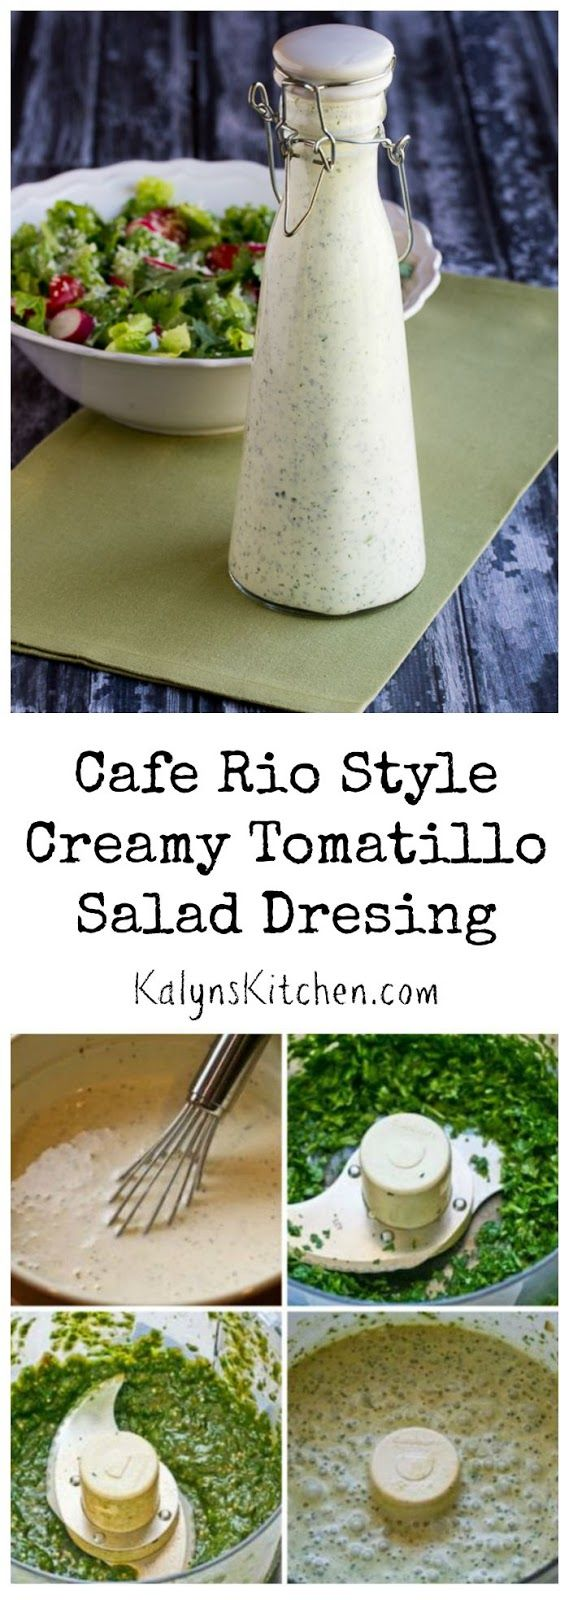 Once you try the creamy Tomatillo Salad Dressing at Cafe Rio you'll be hooked and my recipe for Cafe Rio Style Creamy Tomatillo Salad Dressing can help you make it at home! [found on KalynsKitchen.com]